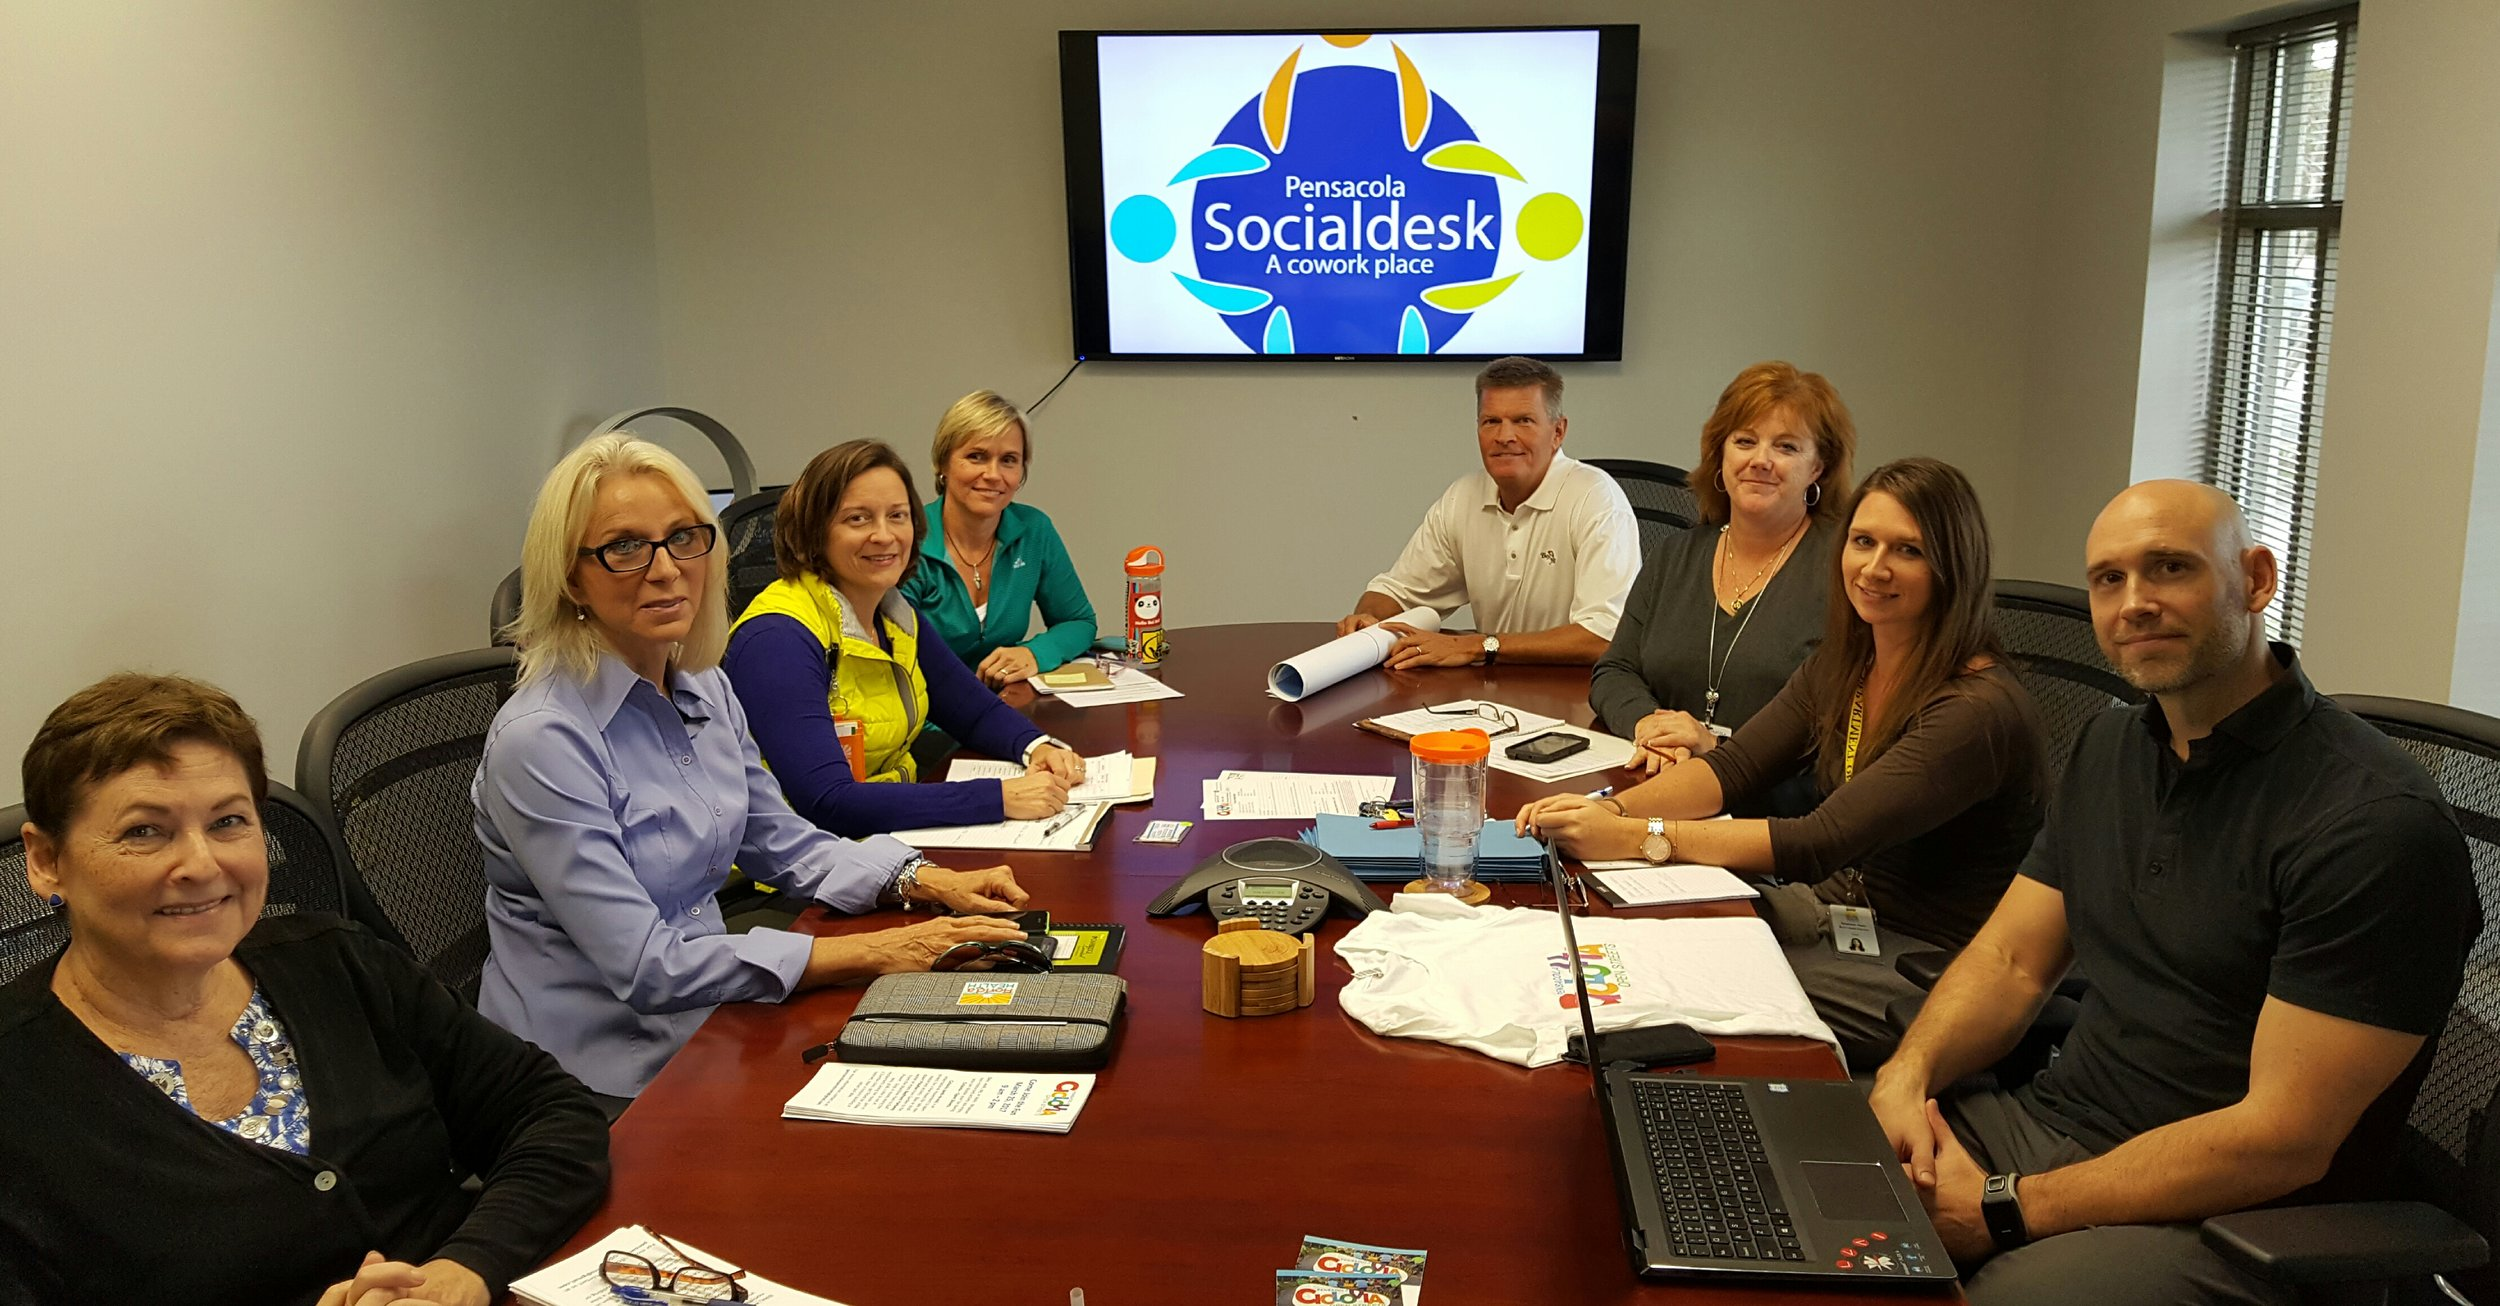 The happy ciclovia team at work at Socialdesk!